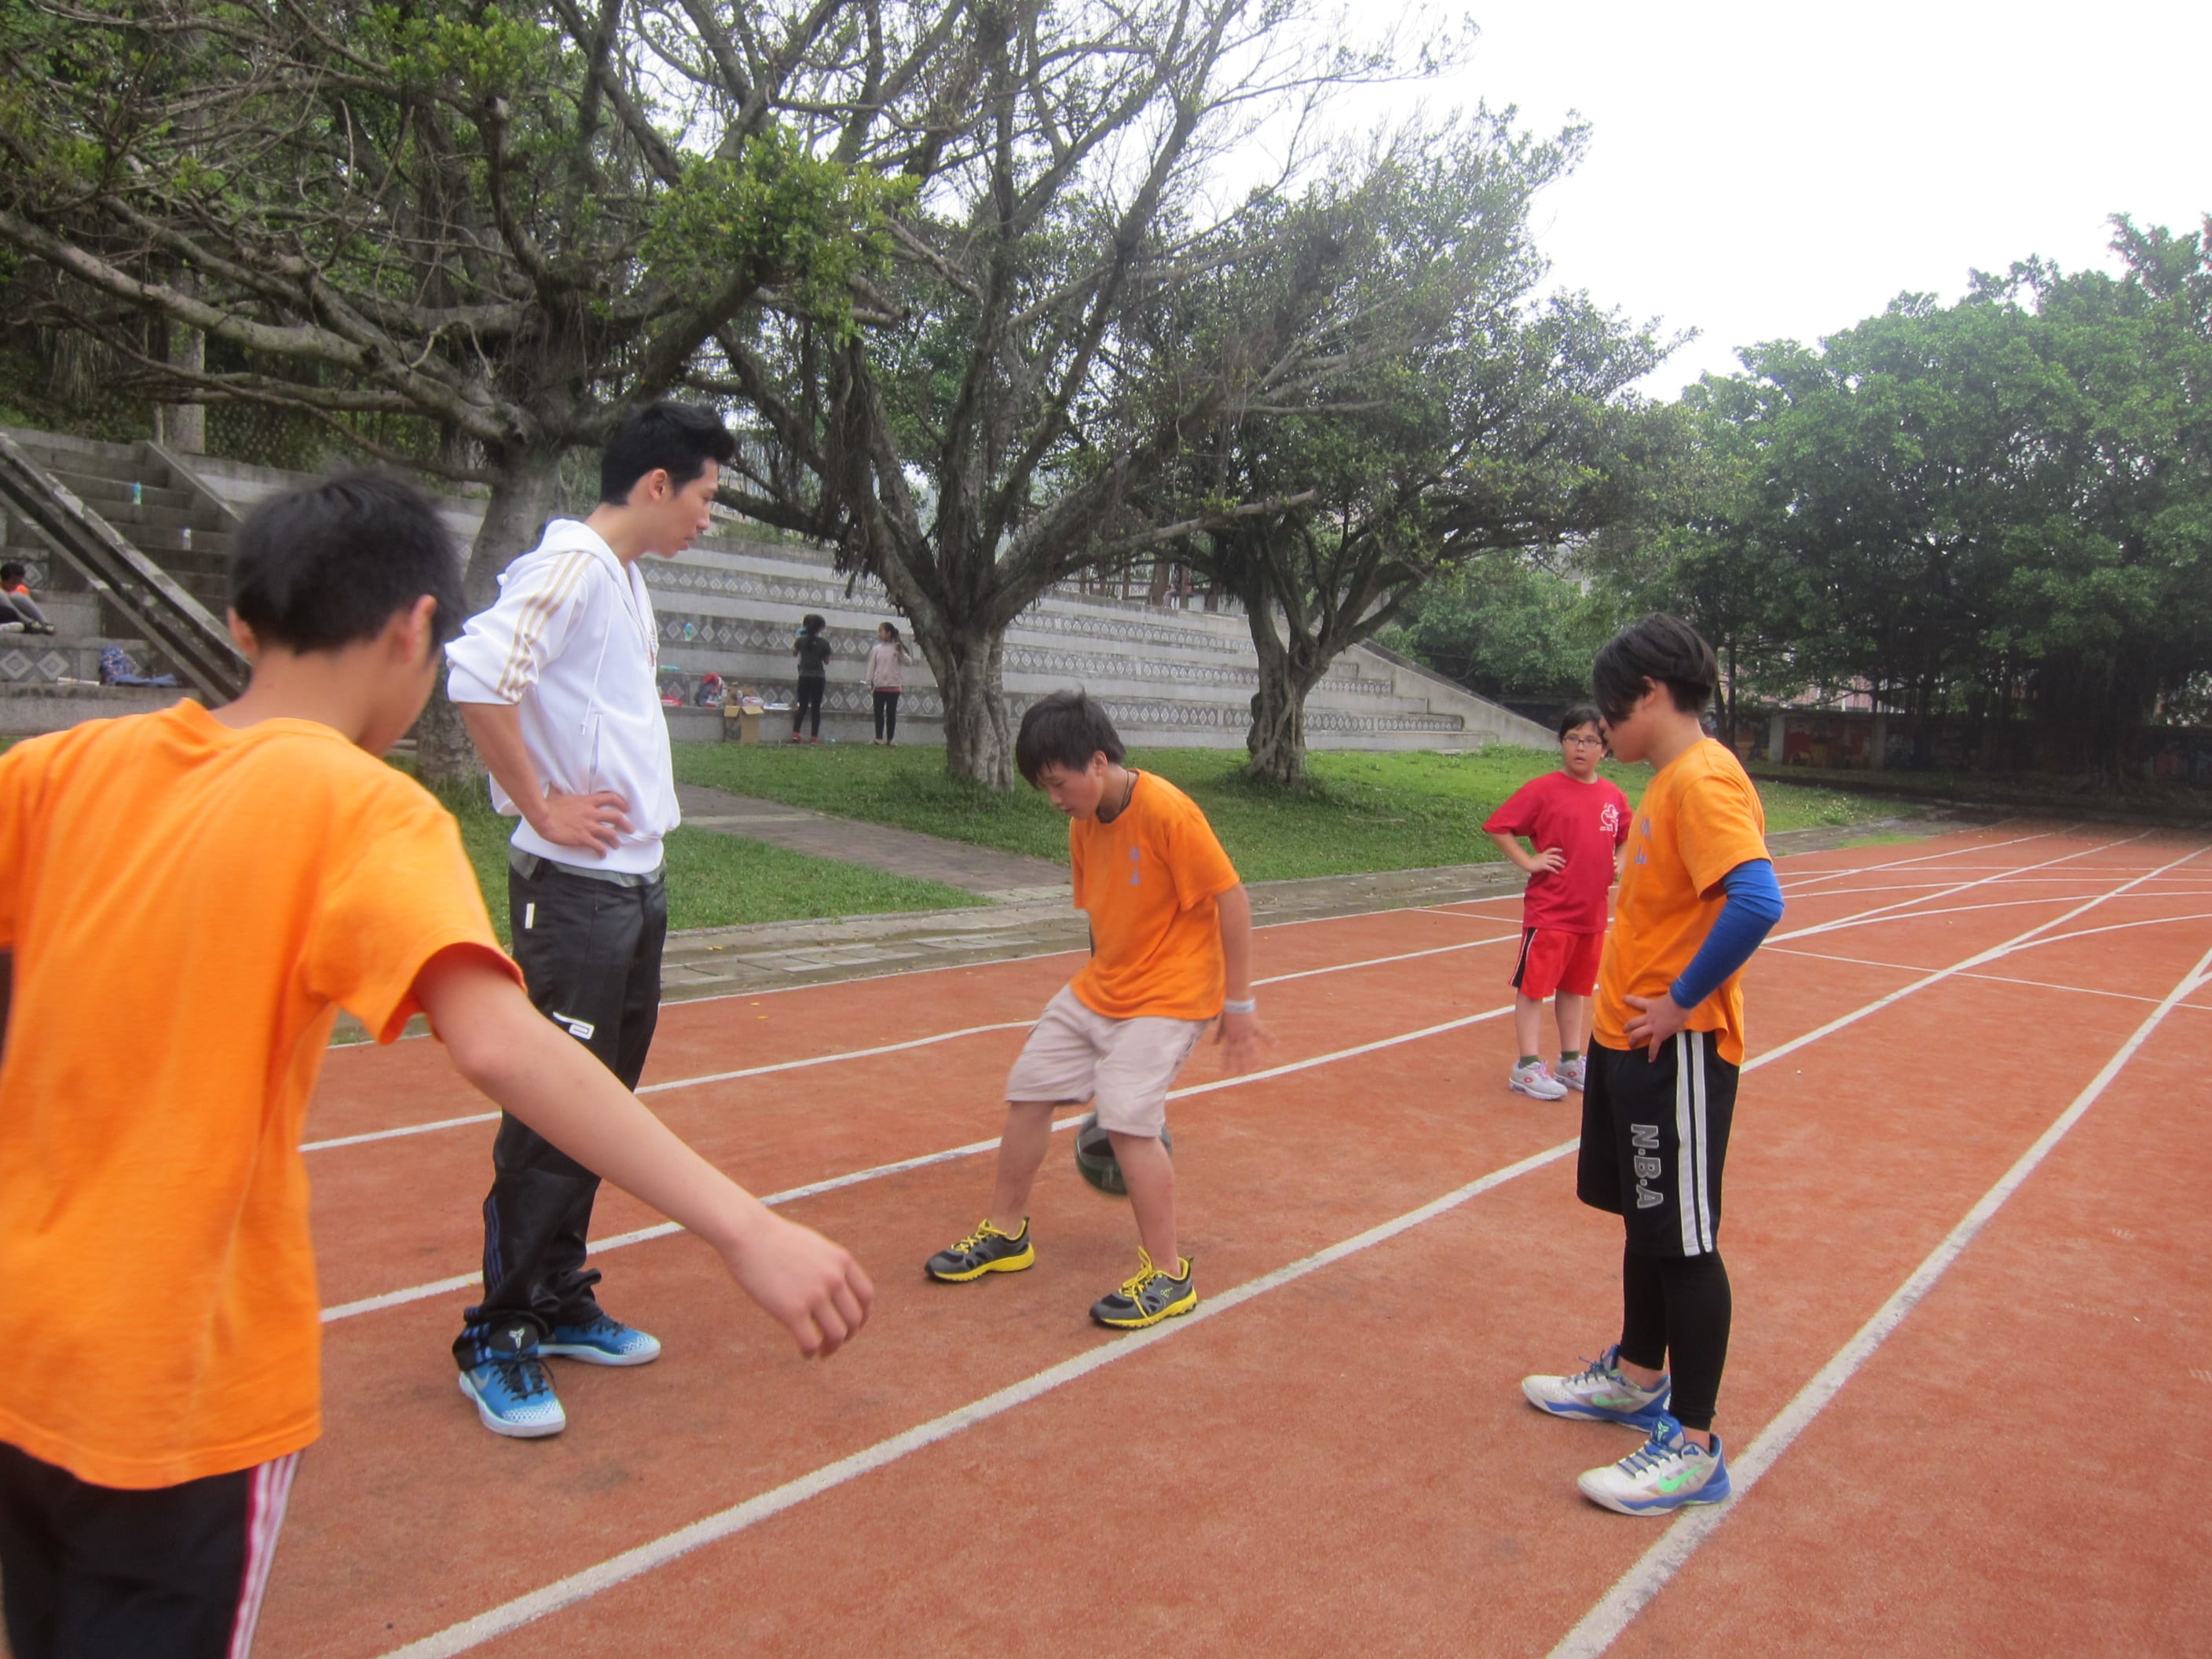 2014 5/17 Youth Basketball Program 少年籃球課程